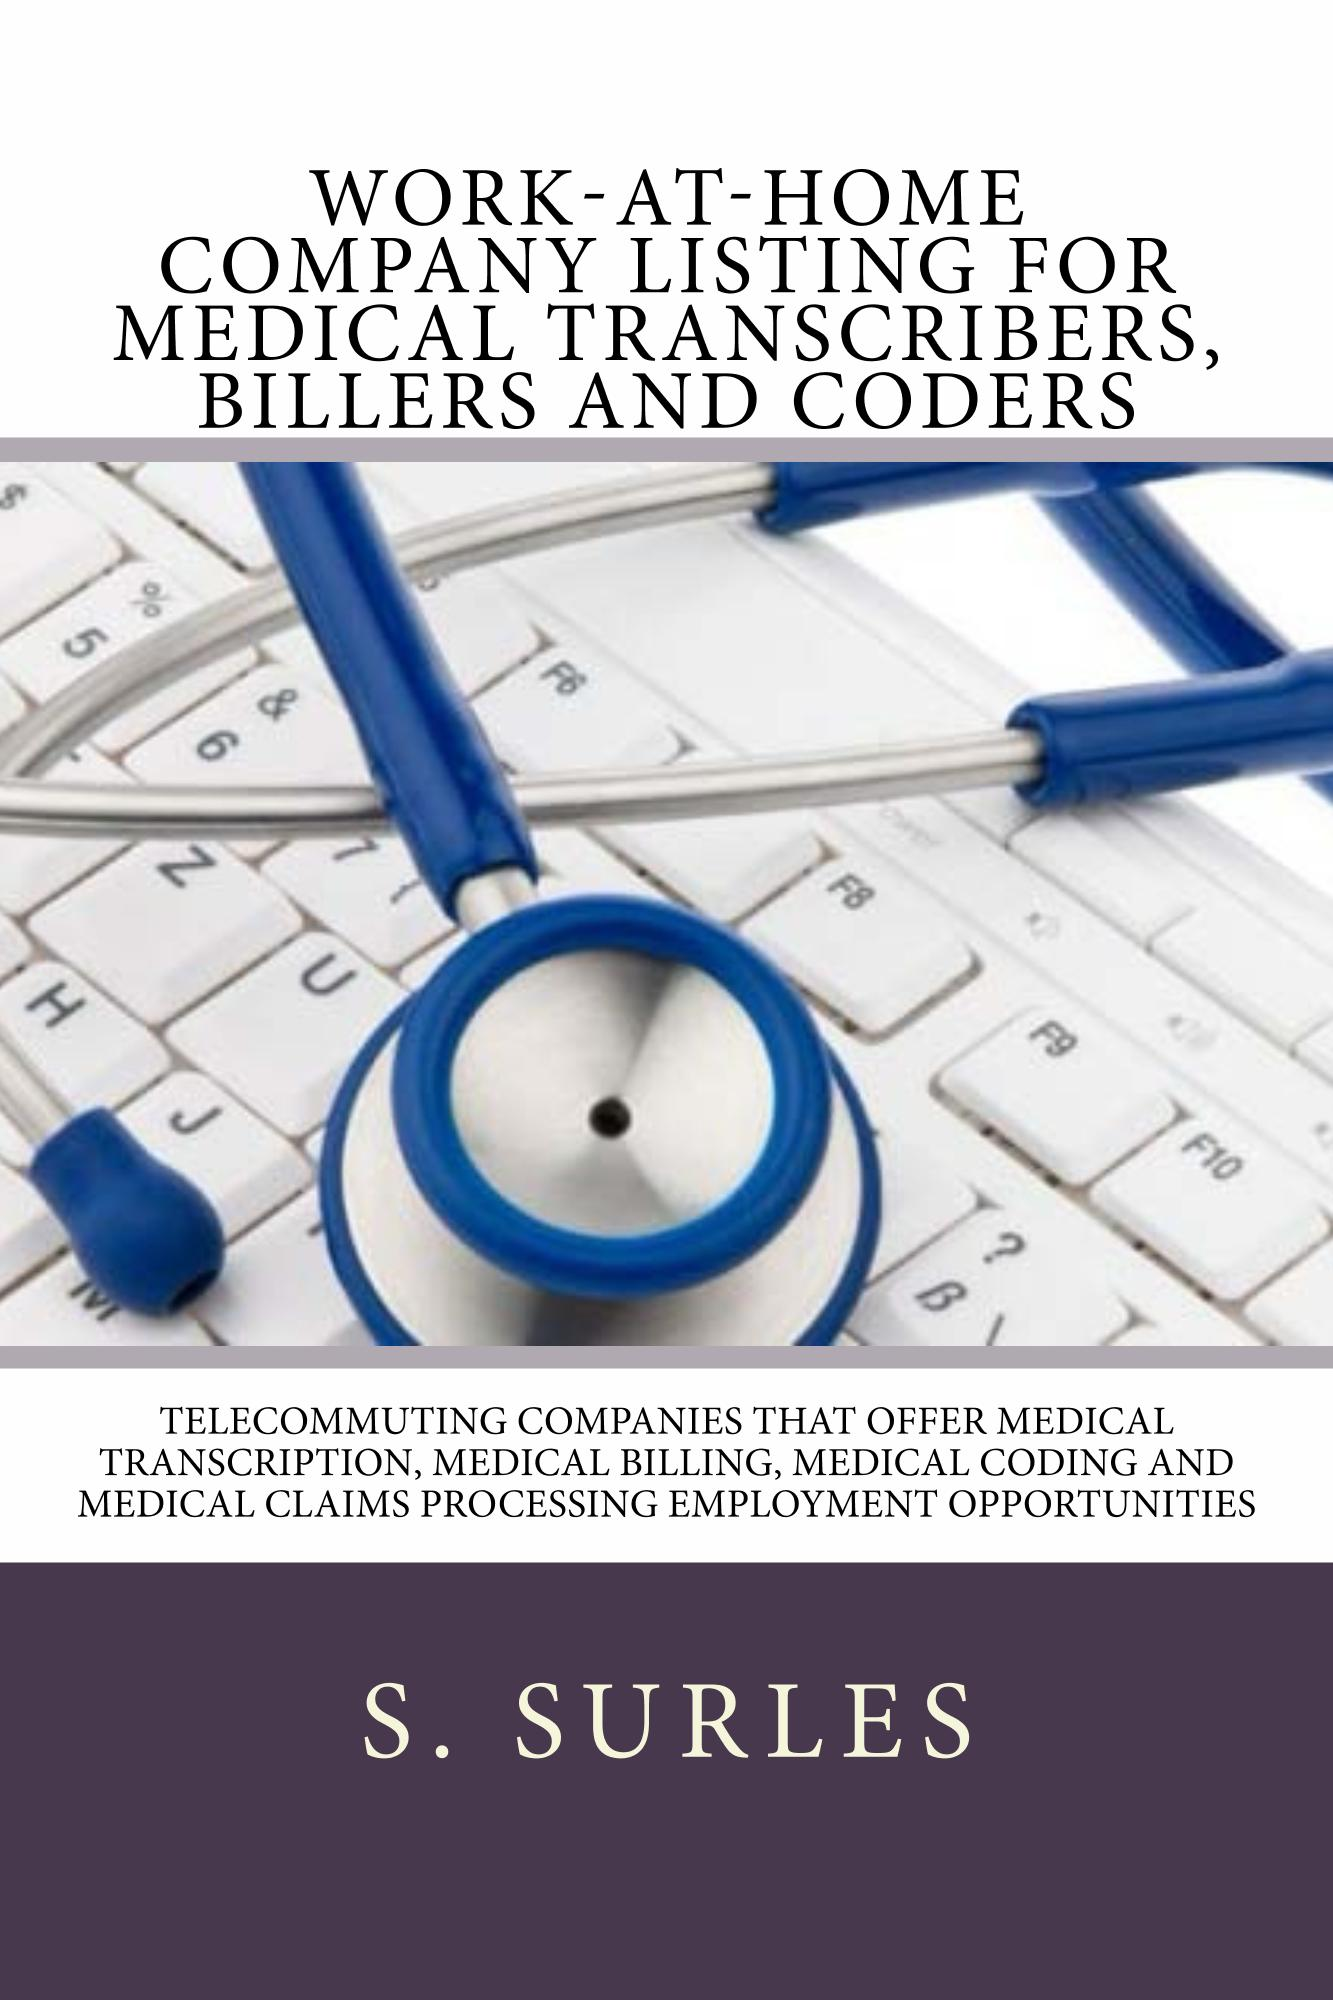 Work-at-Home Company Listing for Medical Transcribers, Billers and Coders. Order: https://www.paypal.me/HEA/19.95 - Ebook contains hundreds of companies hiring home assembly and craft workers each year nationwide and globally. Purchase today for only $19.95. Free lifetime updates, no scams and no monthly fees. #ebook #medicaltranscription #medicalcoding #medicalbilling #workathome #workfromhome #jobs #jobsearch #careers #telecommuting